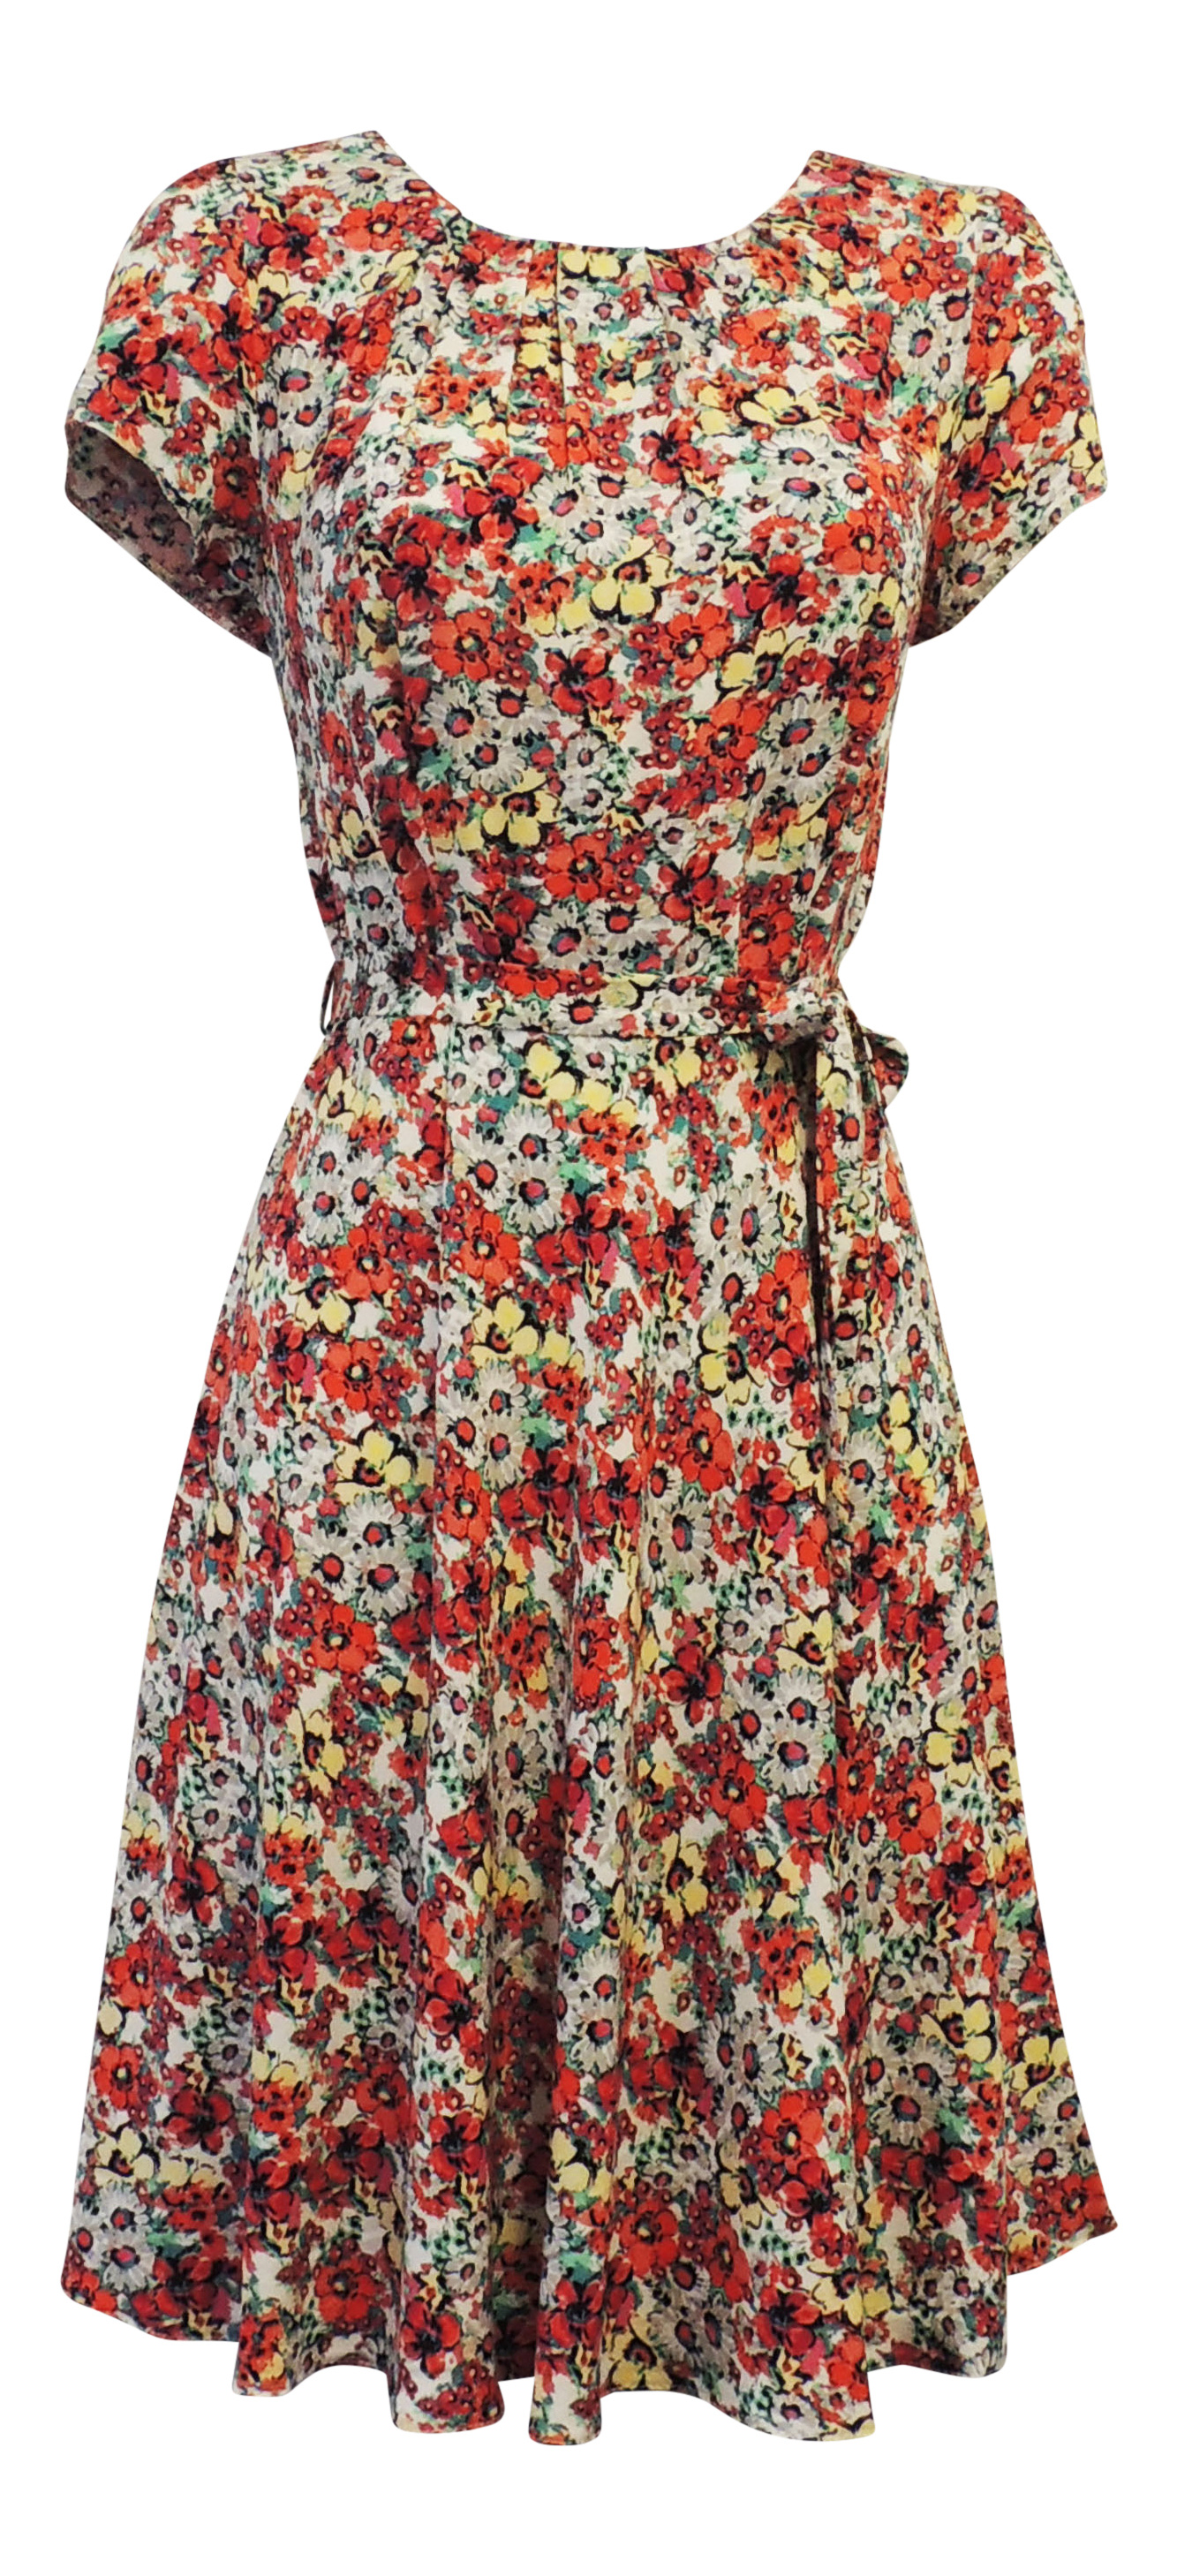 1940s style tea dresses uk next day delivery